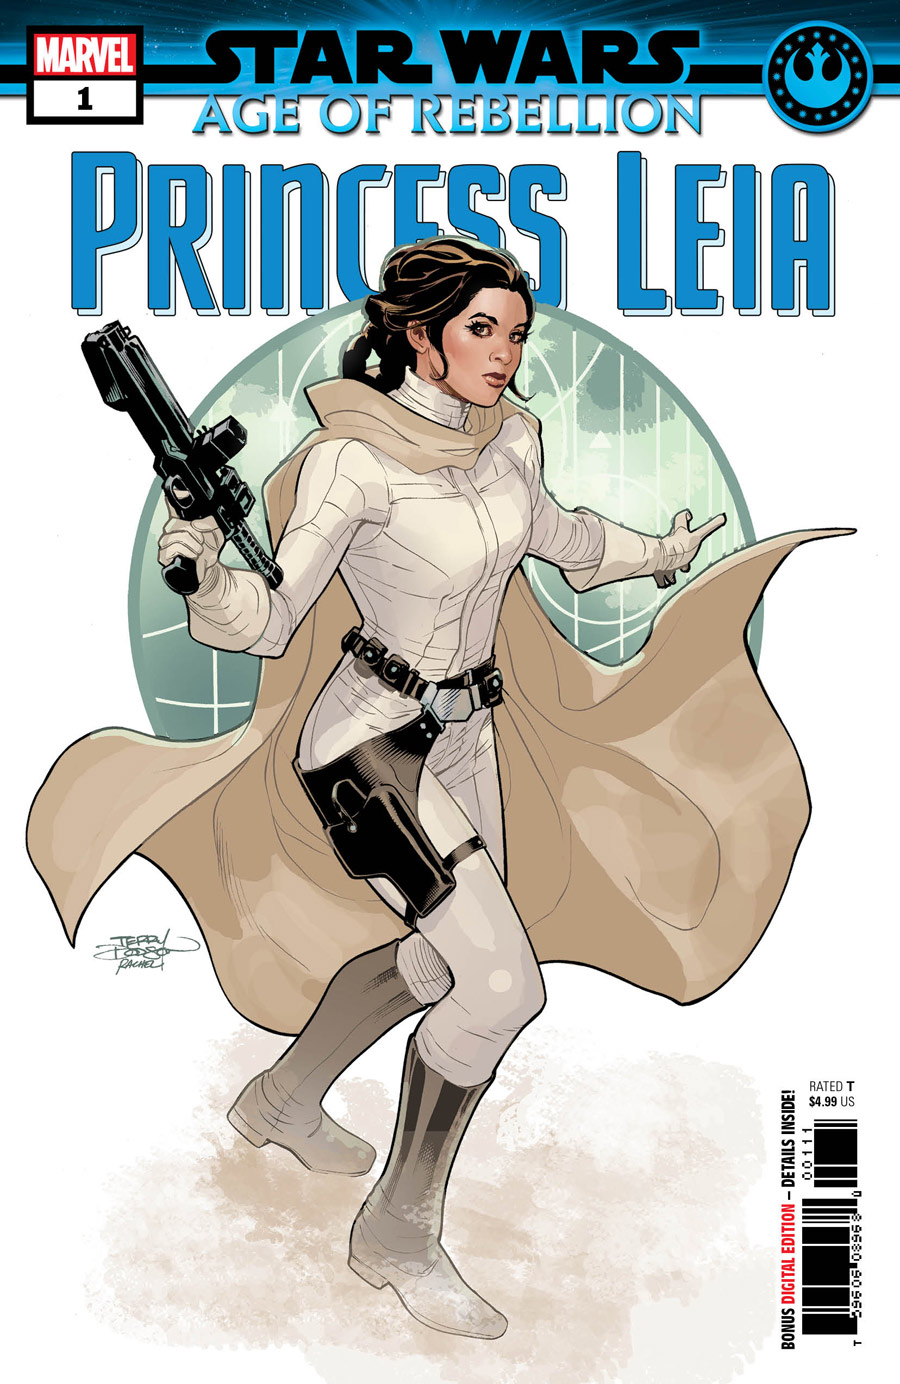 Star Wars: Age of Rebellion - Princess Leia